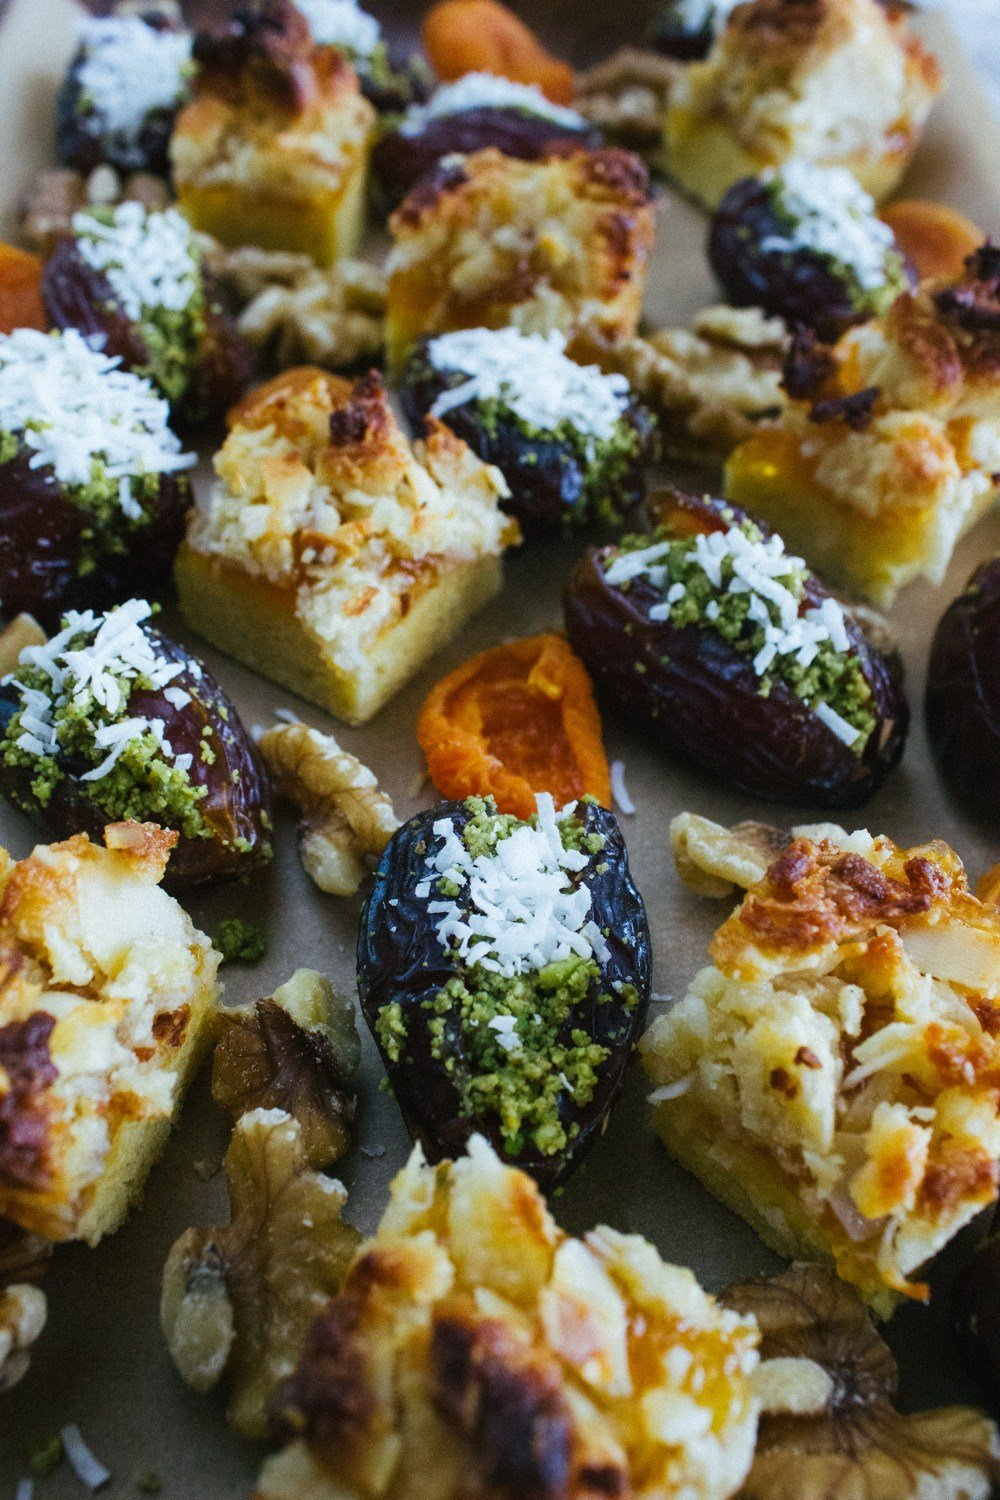 Pistachio Stuffed Dates With Coconut